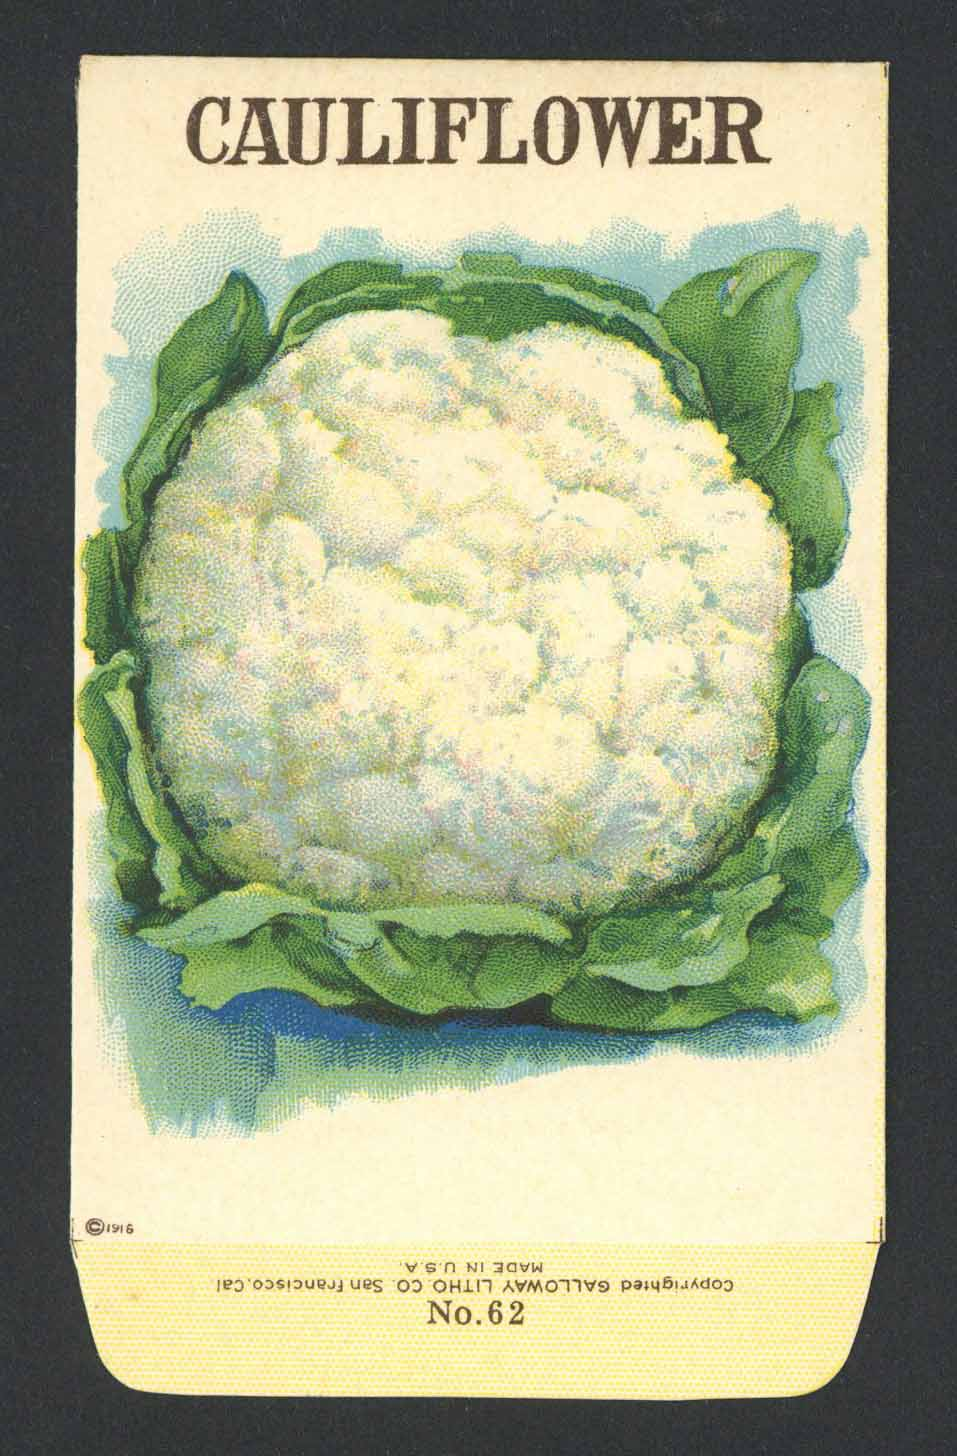 Cauliflower Antique Stock Seed Packet